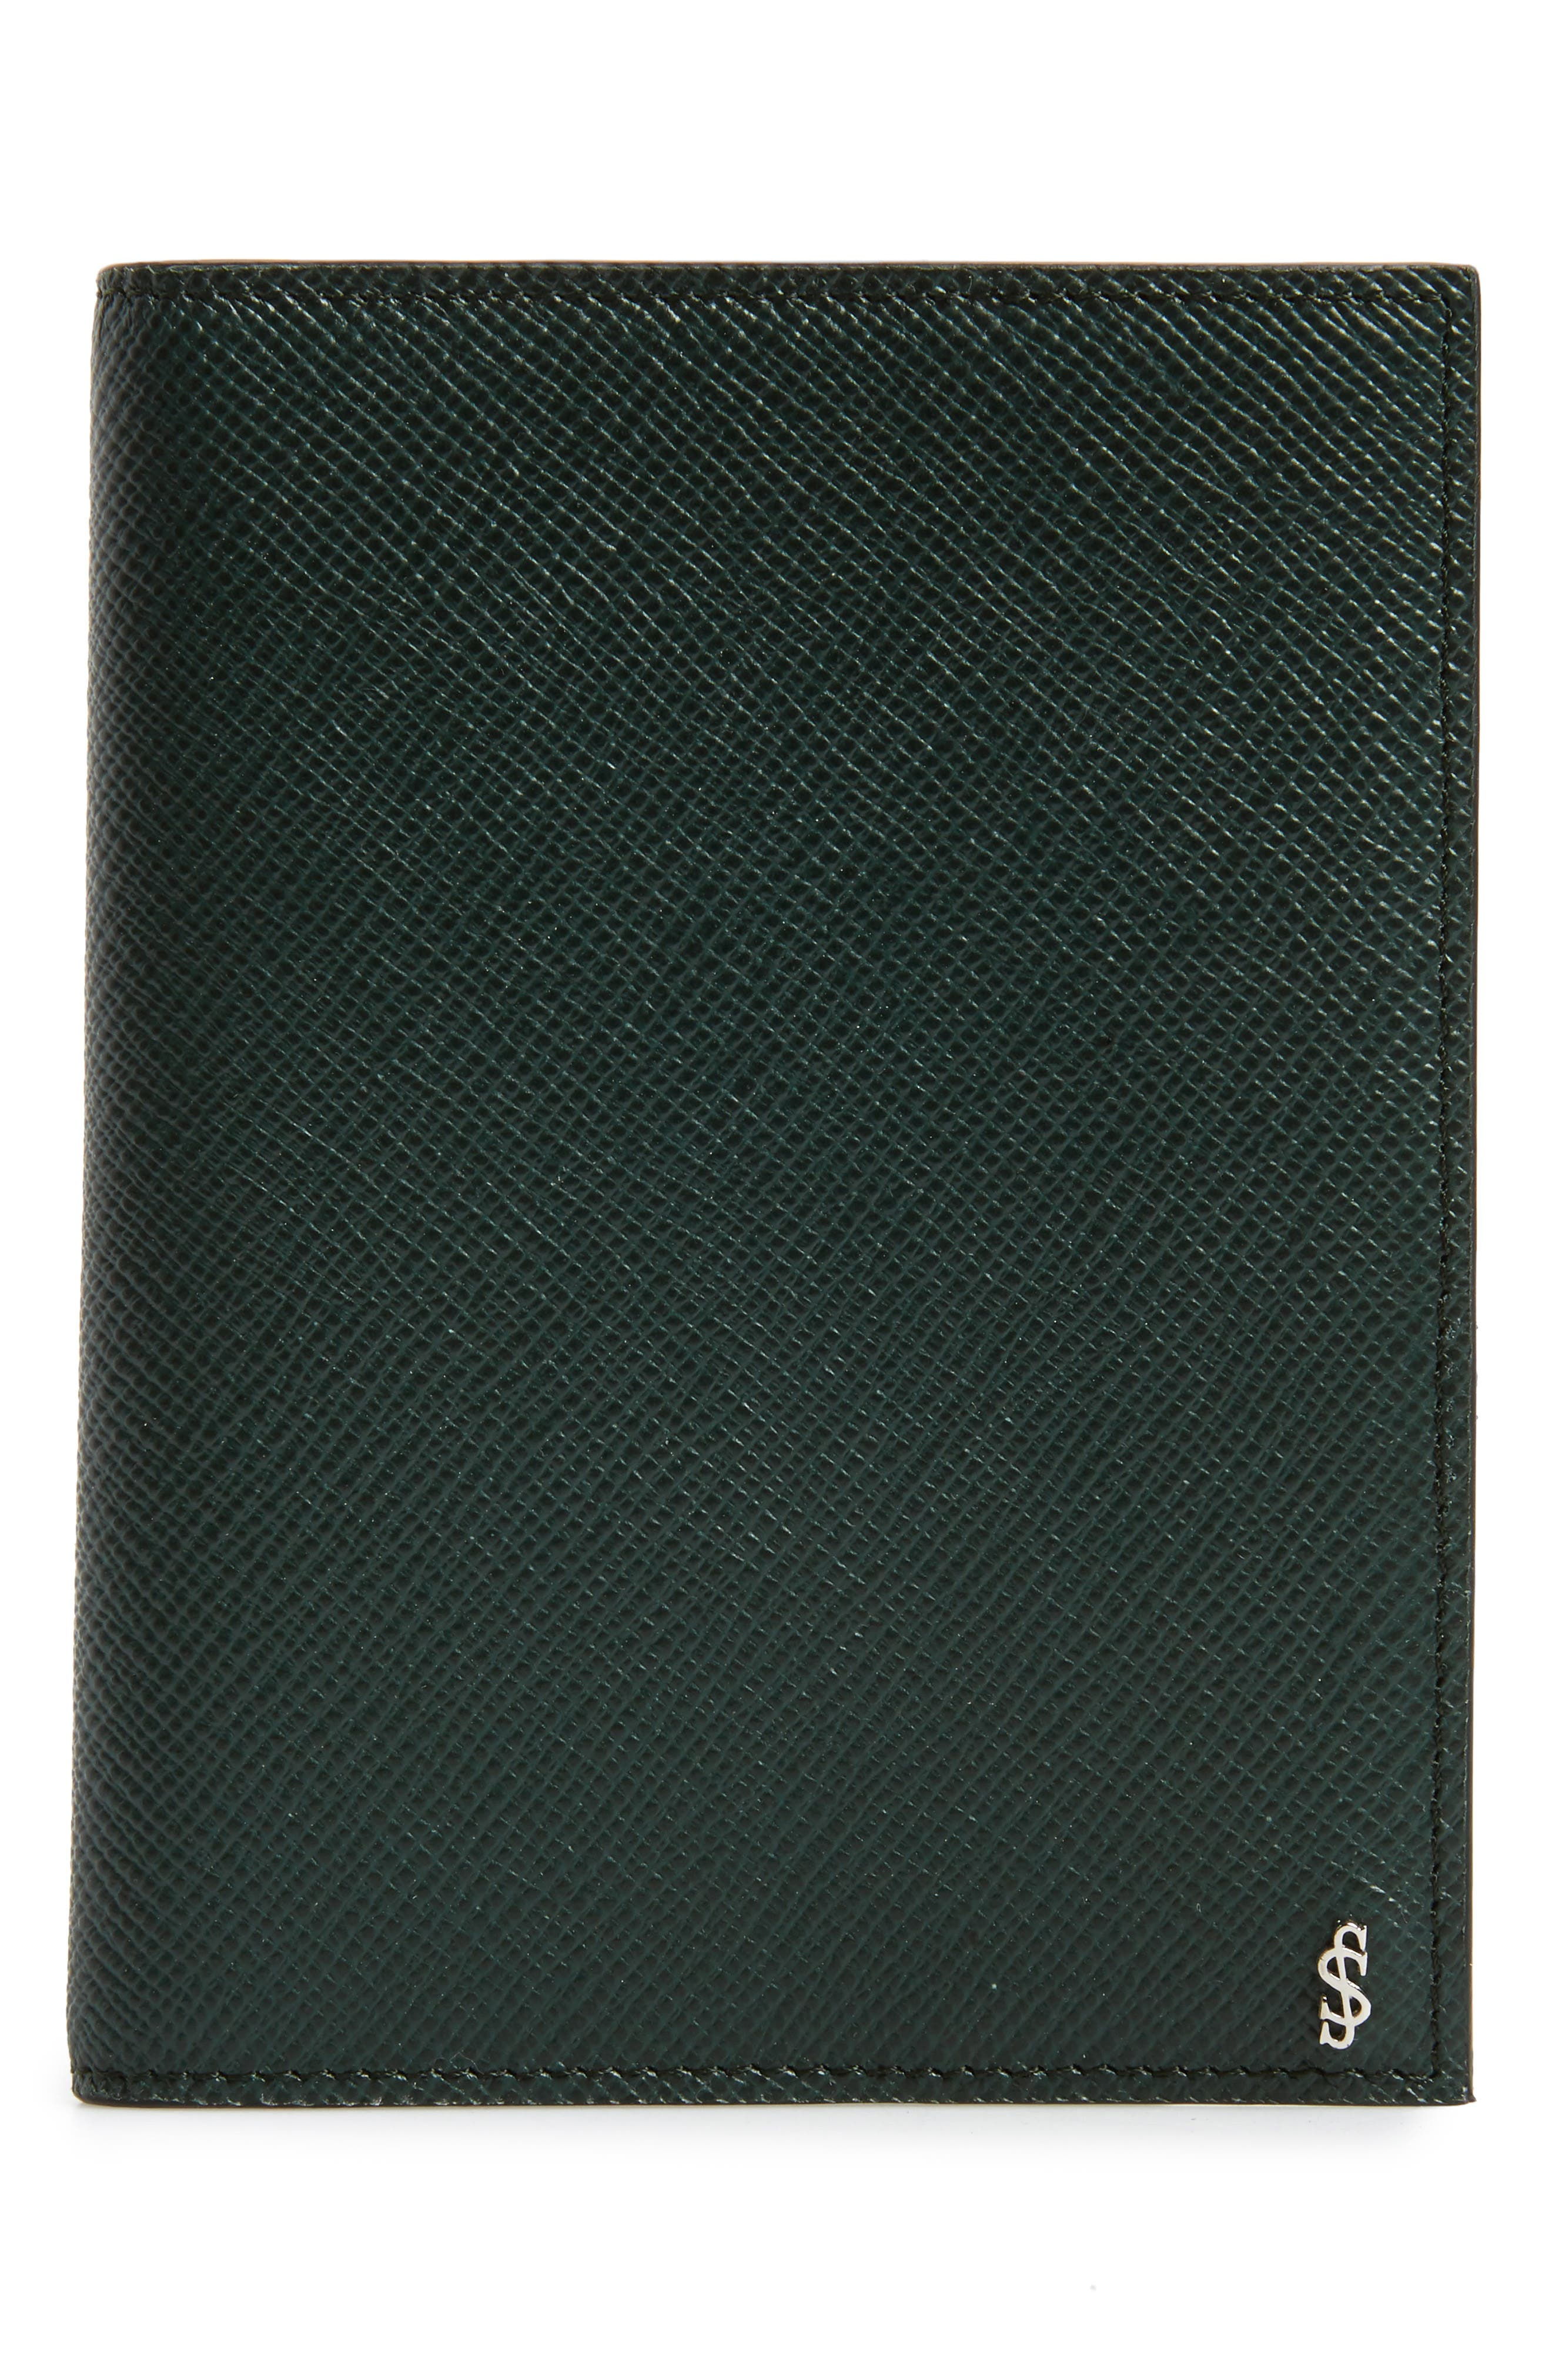 Evolution Leather Passport Case,                         Main,                         color, Forest Green